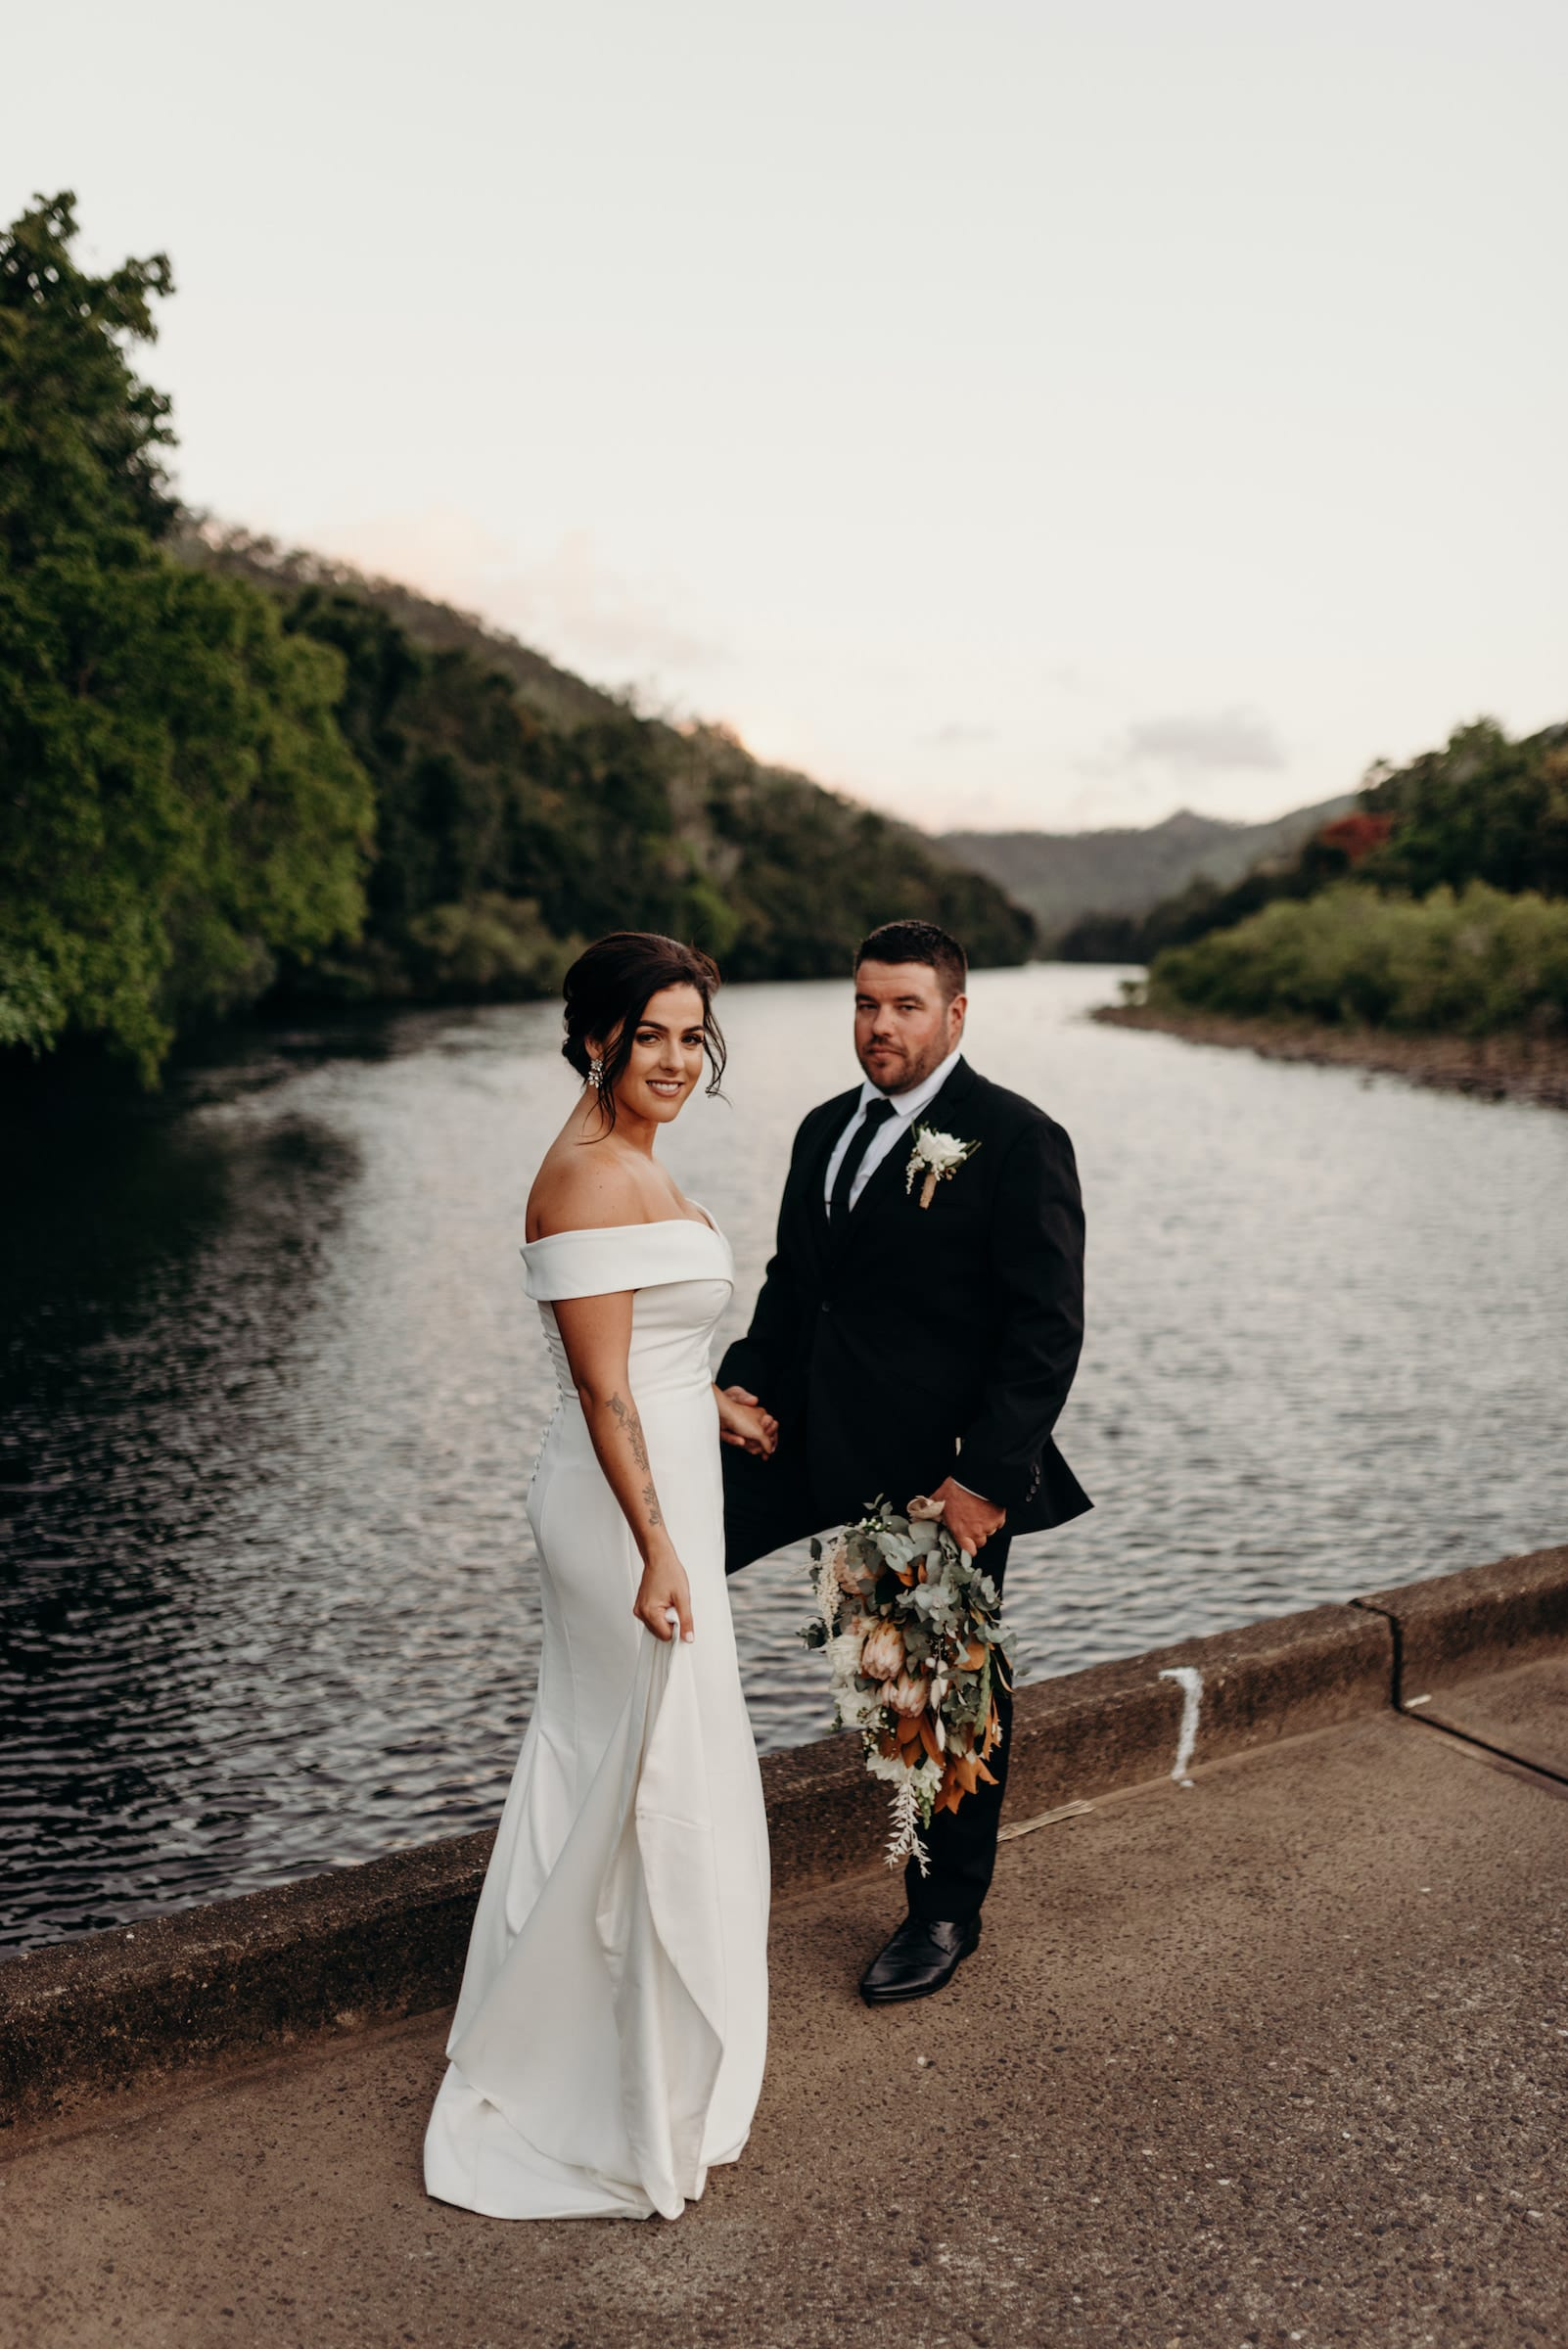 Cairns Wedding photography, Couple standing on a bridge